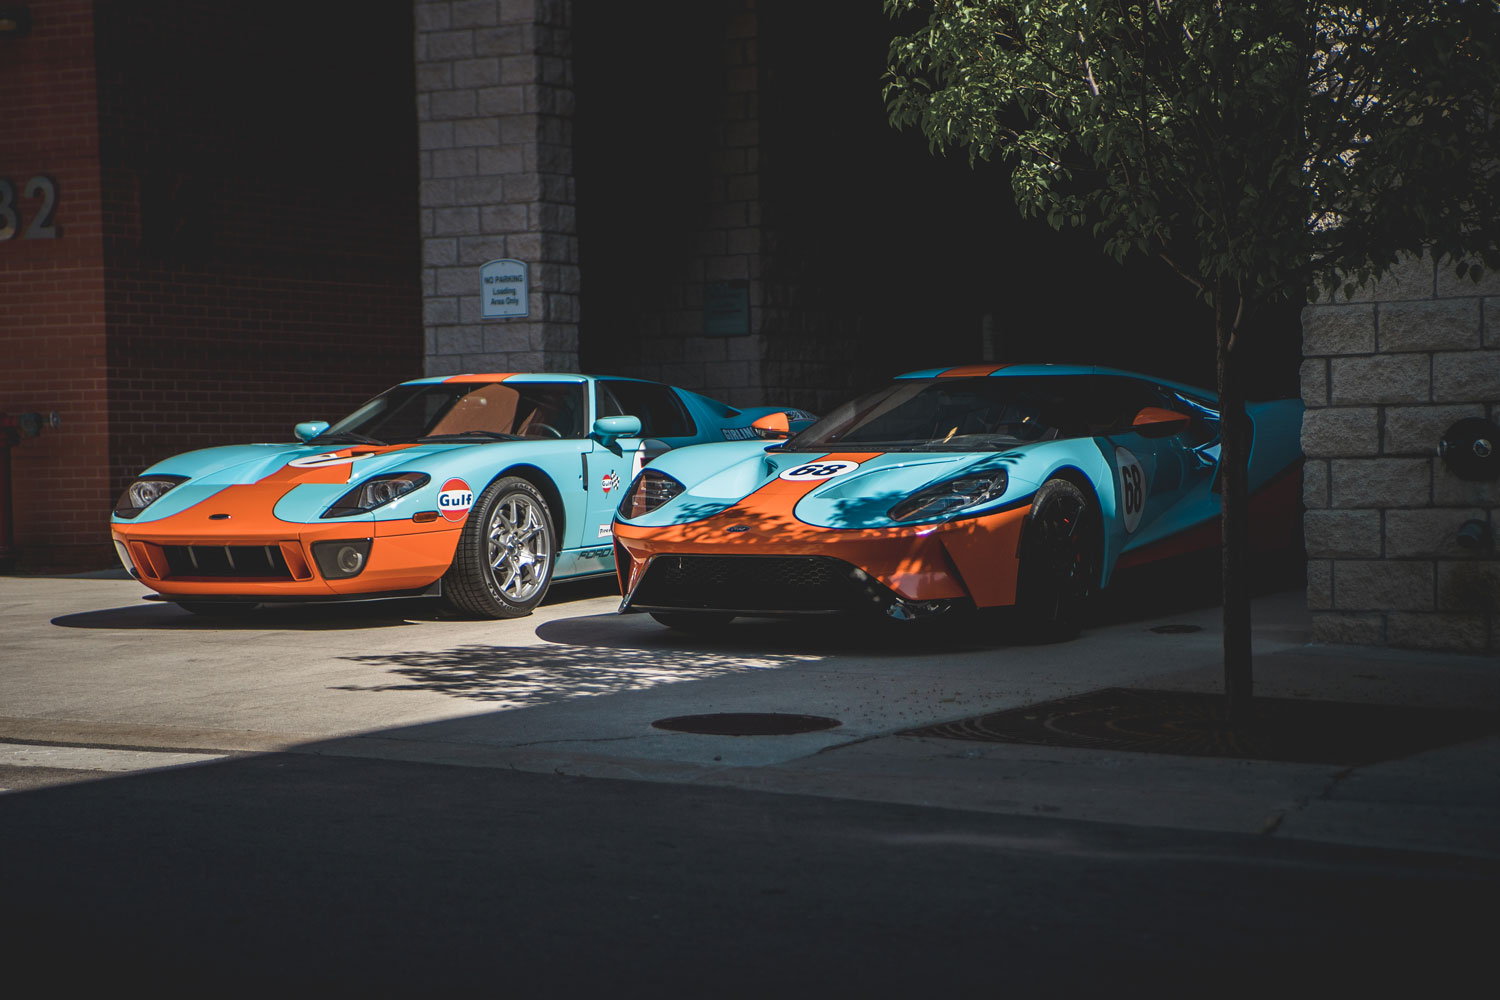 2006 Ford GT Heritage edition (left) and 2017 Ford GT Heritage edition (right)